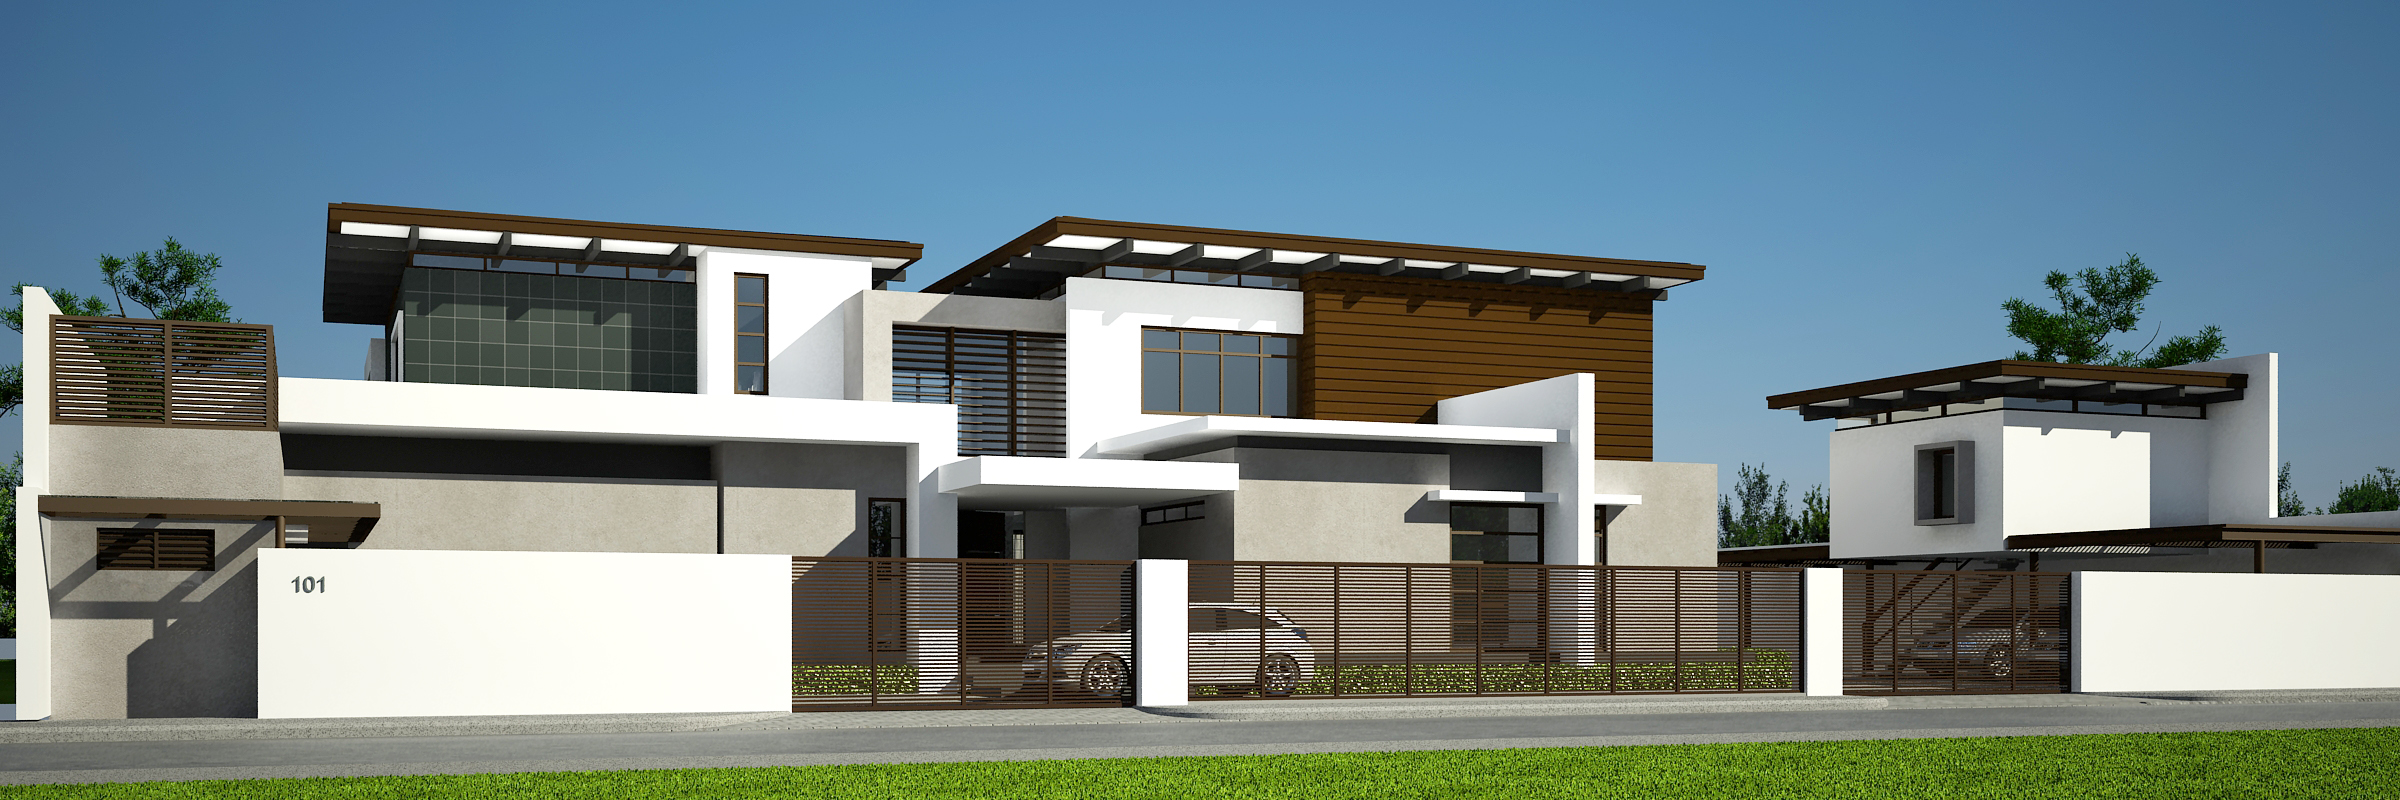 Modern house design pictures philippines home design 2017 for Affordable house design philippines